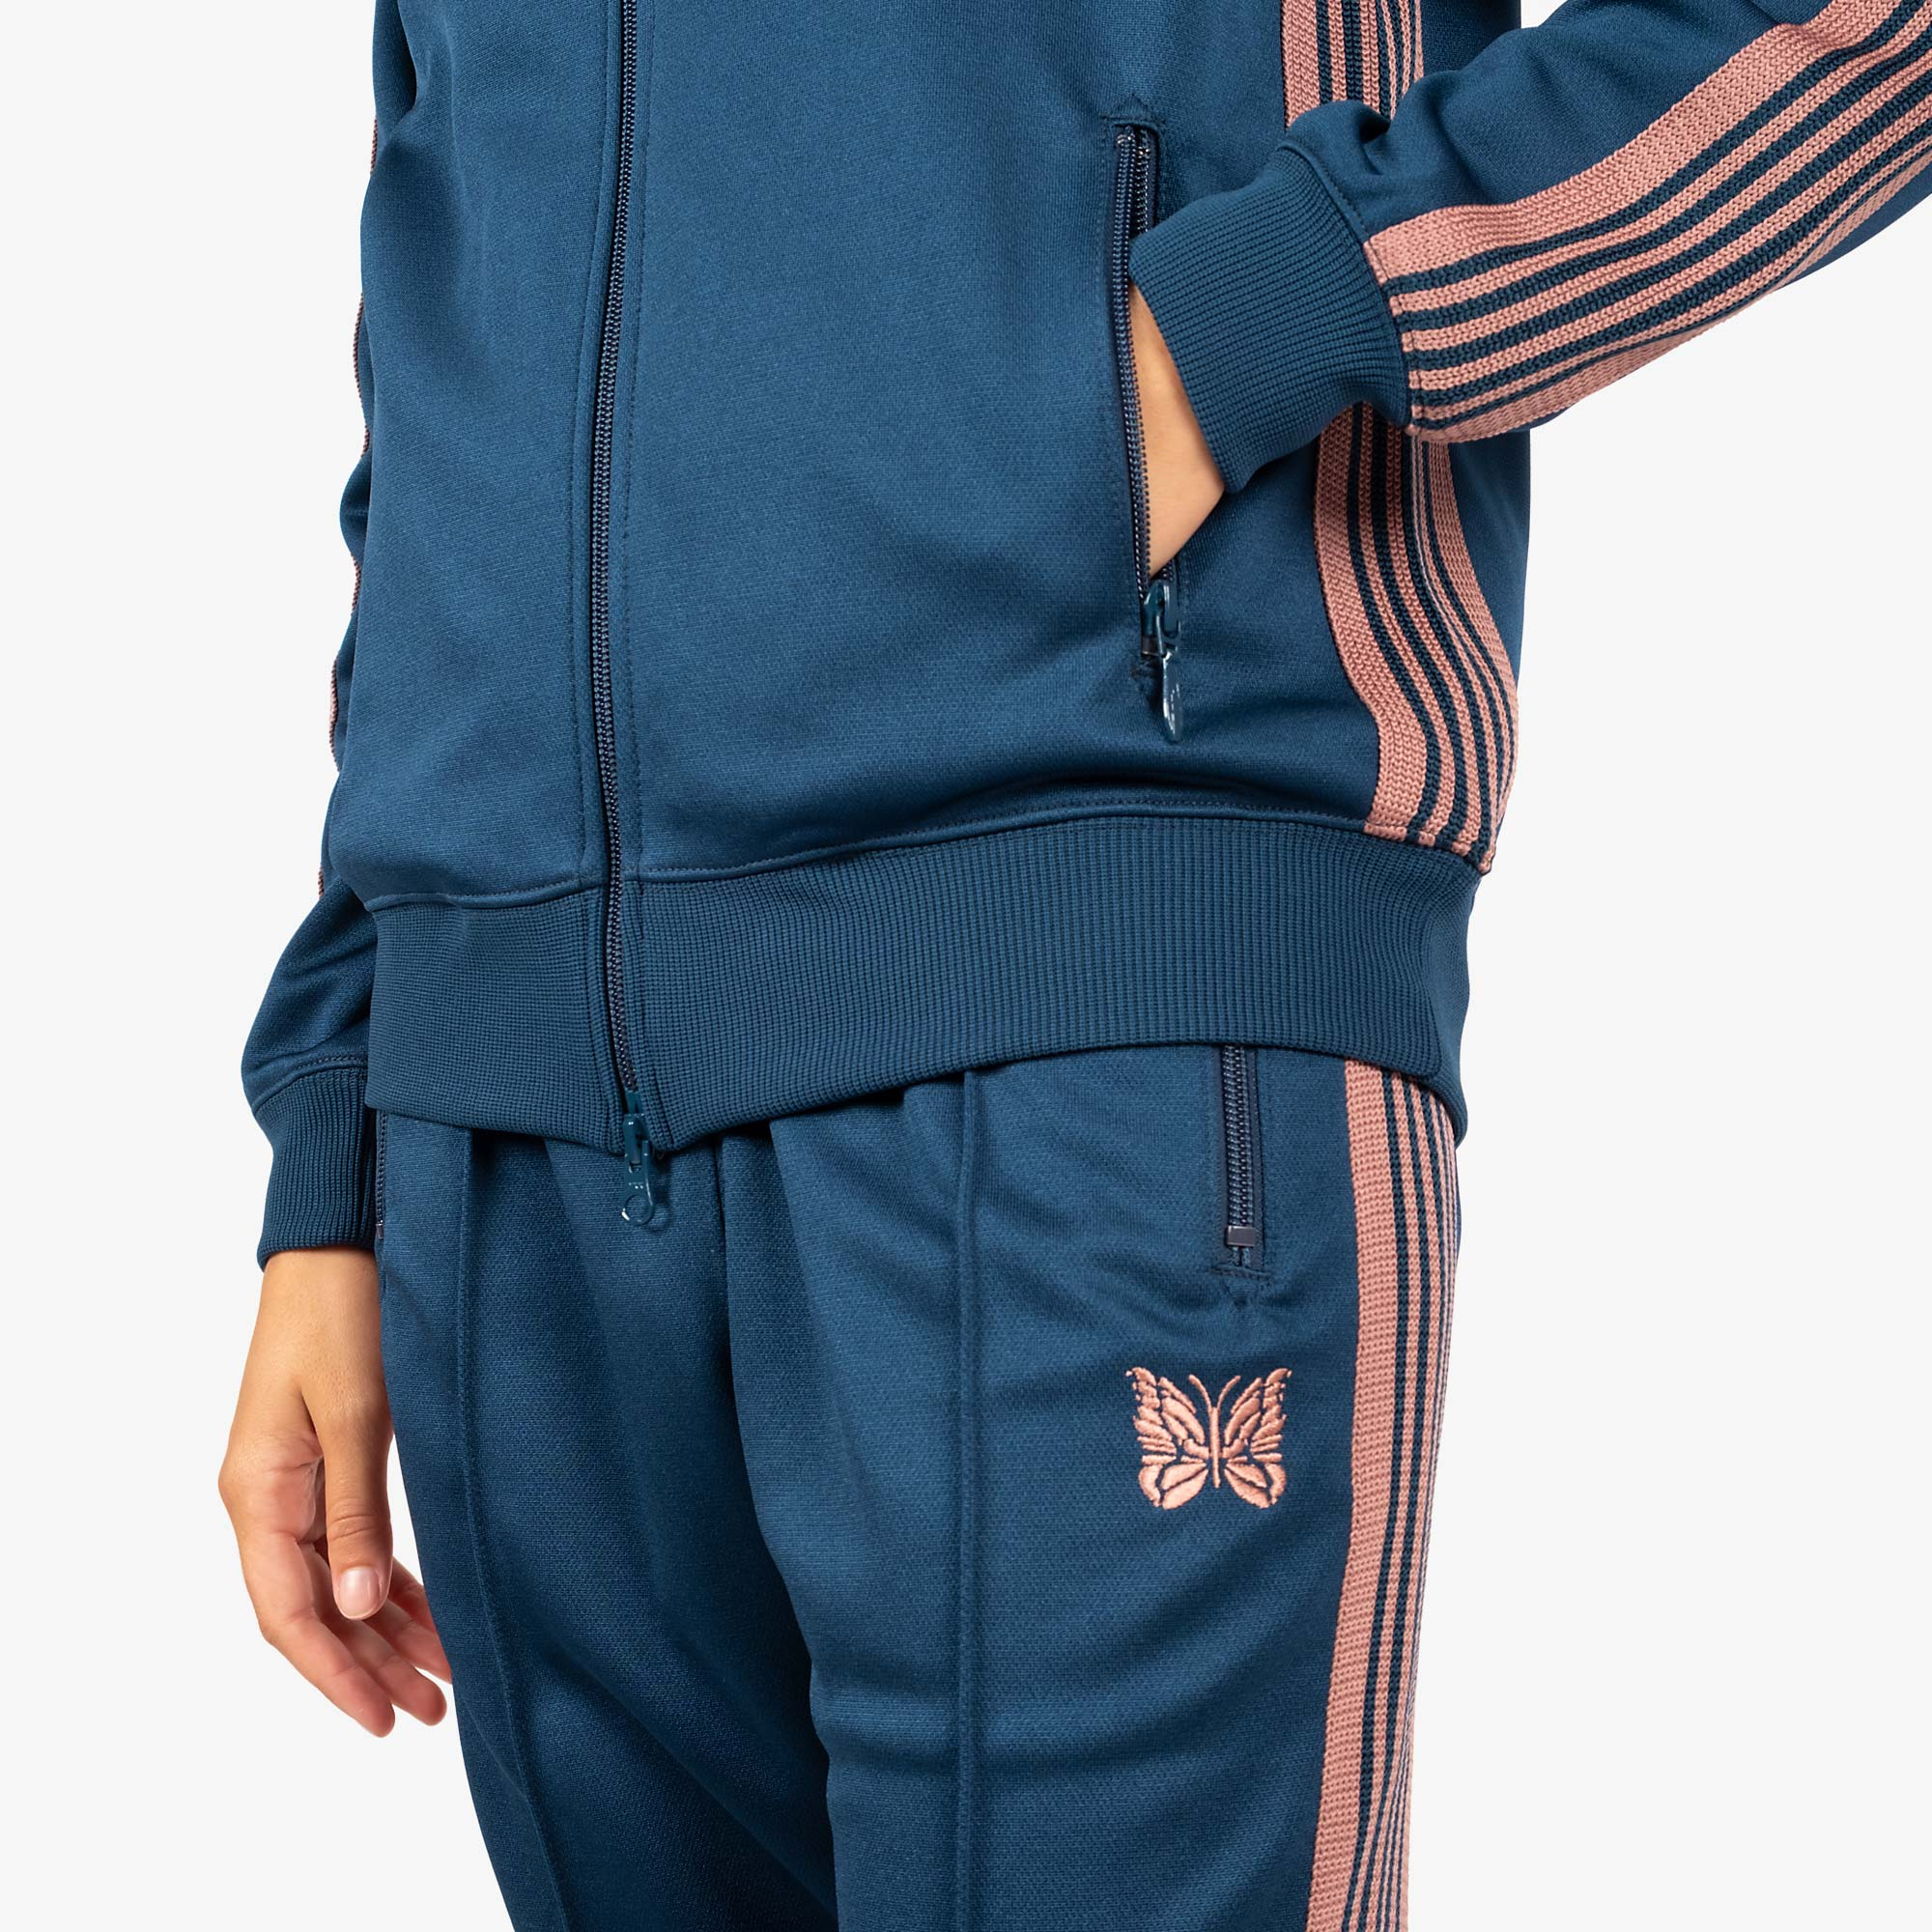 Needles W' Track Jacket - Poly Smooth Teal Green 5